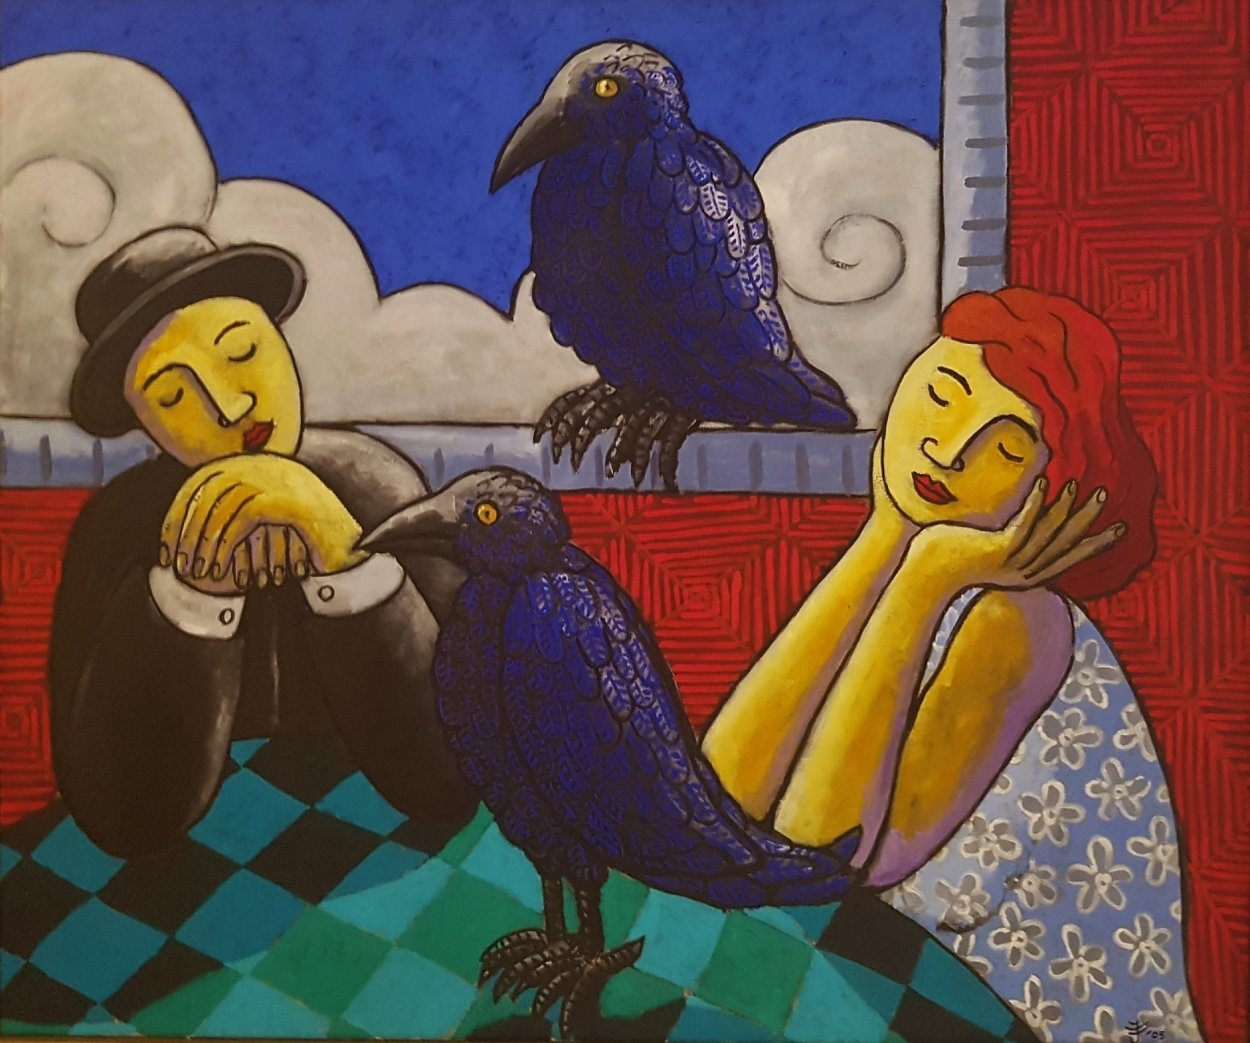 Living with Crows 2005 41x49 Huge Original Painting by Jacques Tange